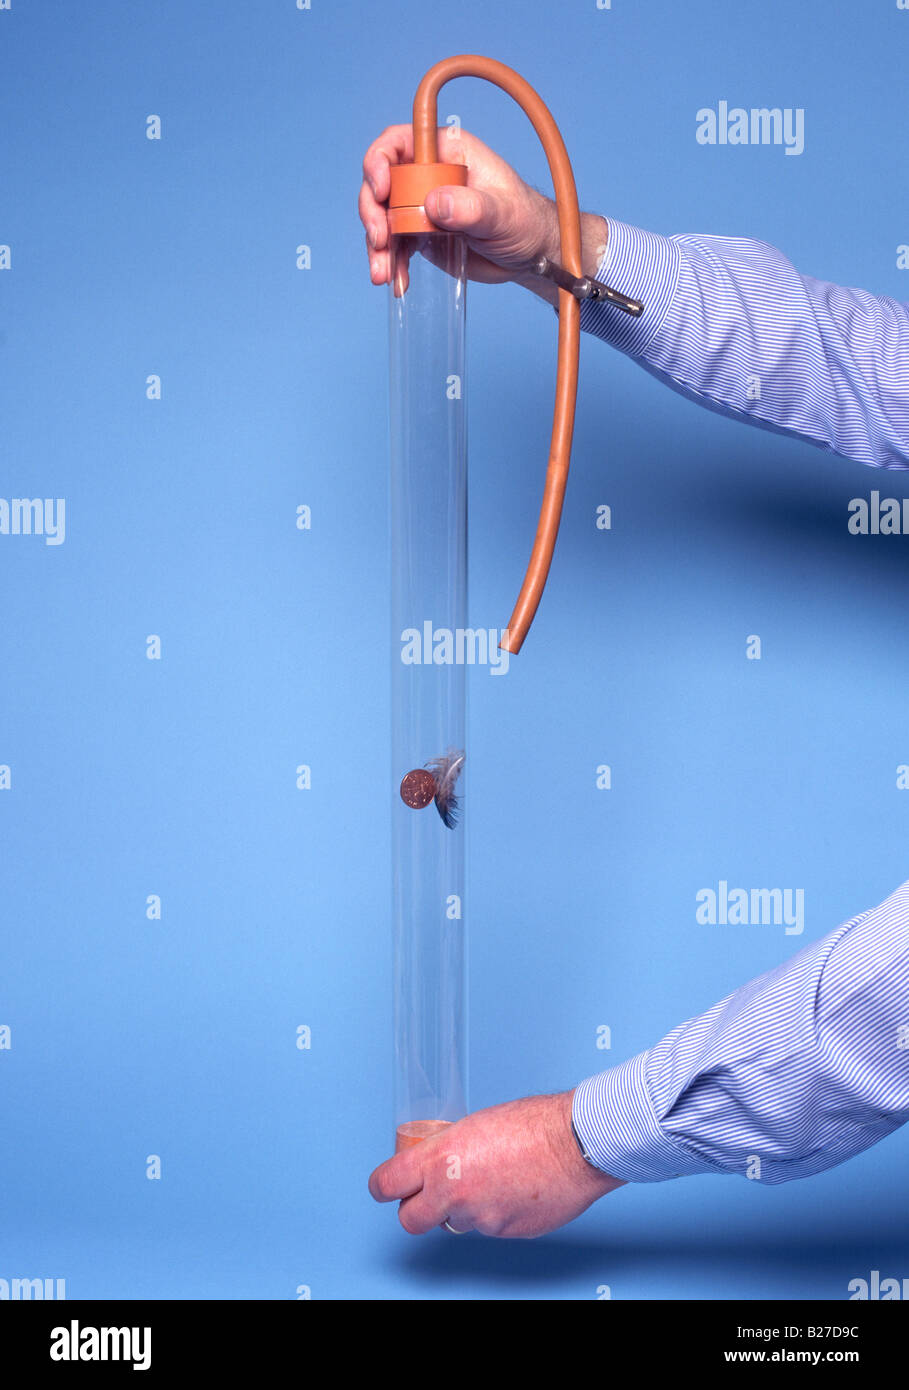 guinea and feather in vacuum modern version with 2 pence and feather which fall at same velocity in vacuum with - Stock Image